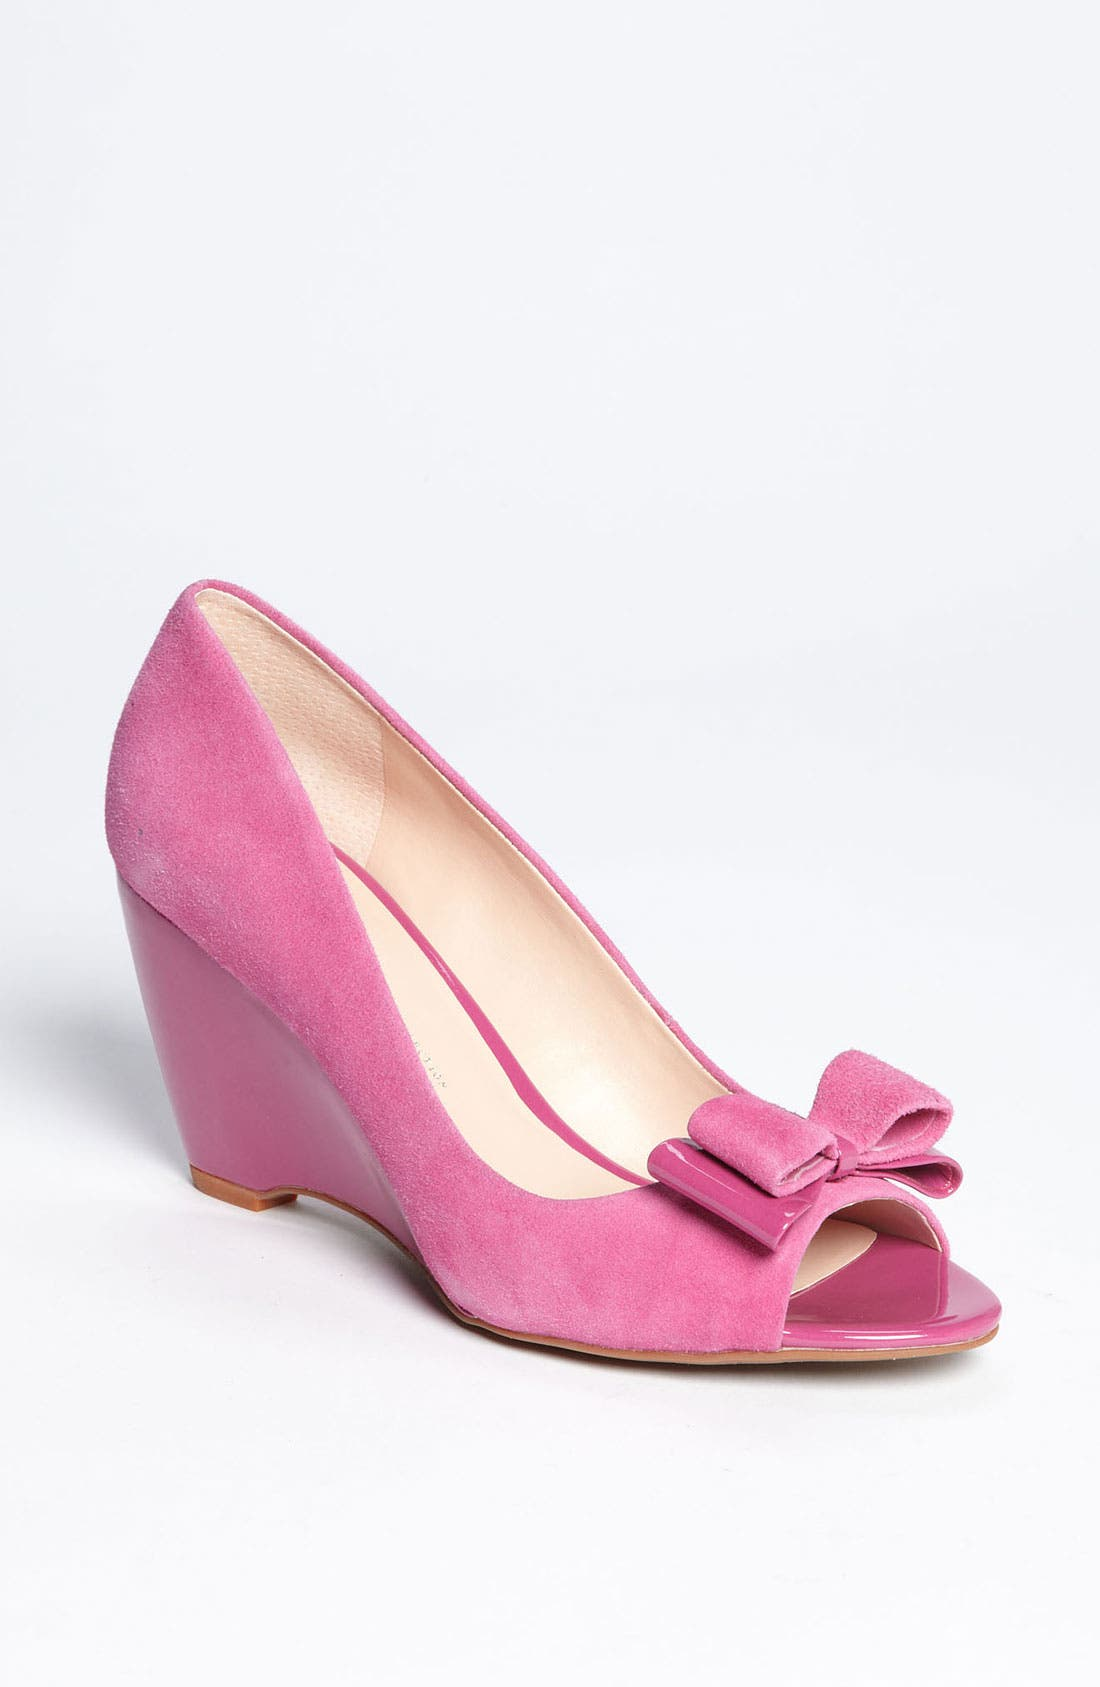 Alternate Image 1 Selected - Franco Sarto 'Hetty' Pump